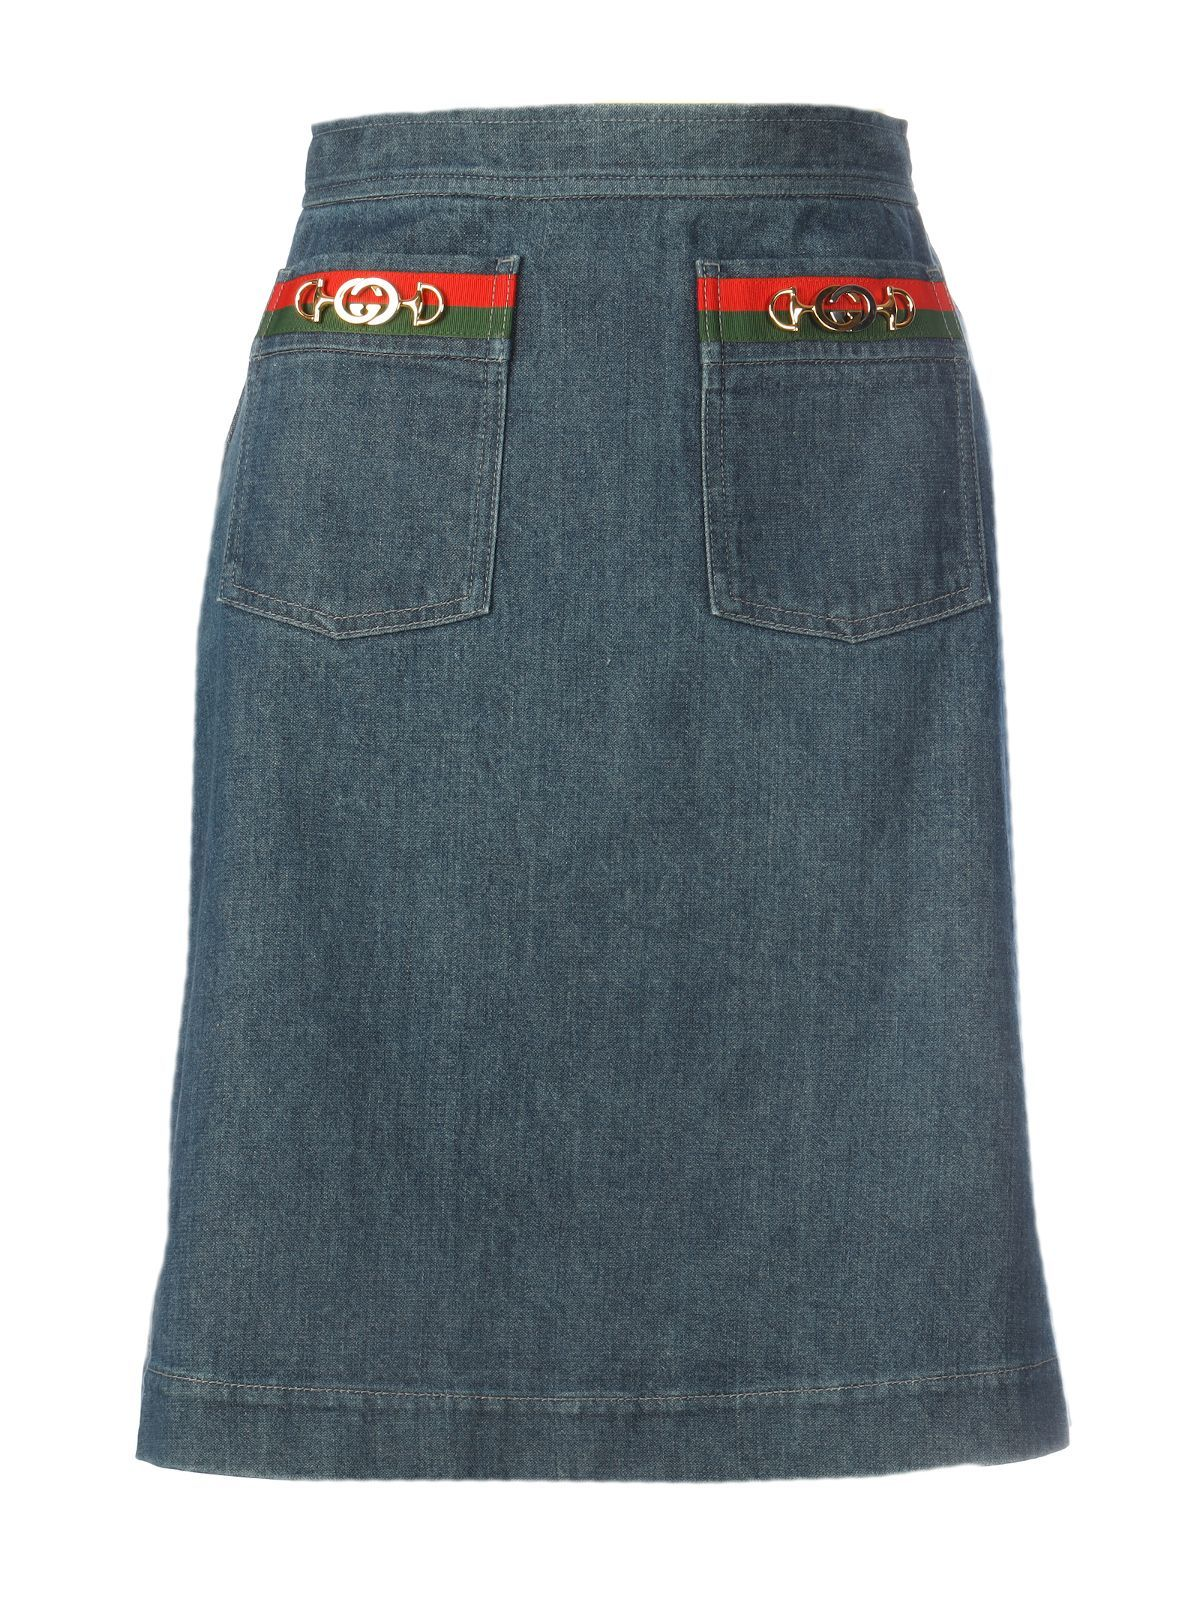 GUCCI WOMEN'S 599373XDA2Y4161 BLUE COTTON SKIRT